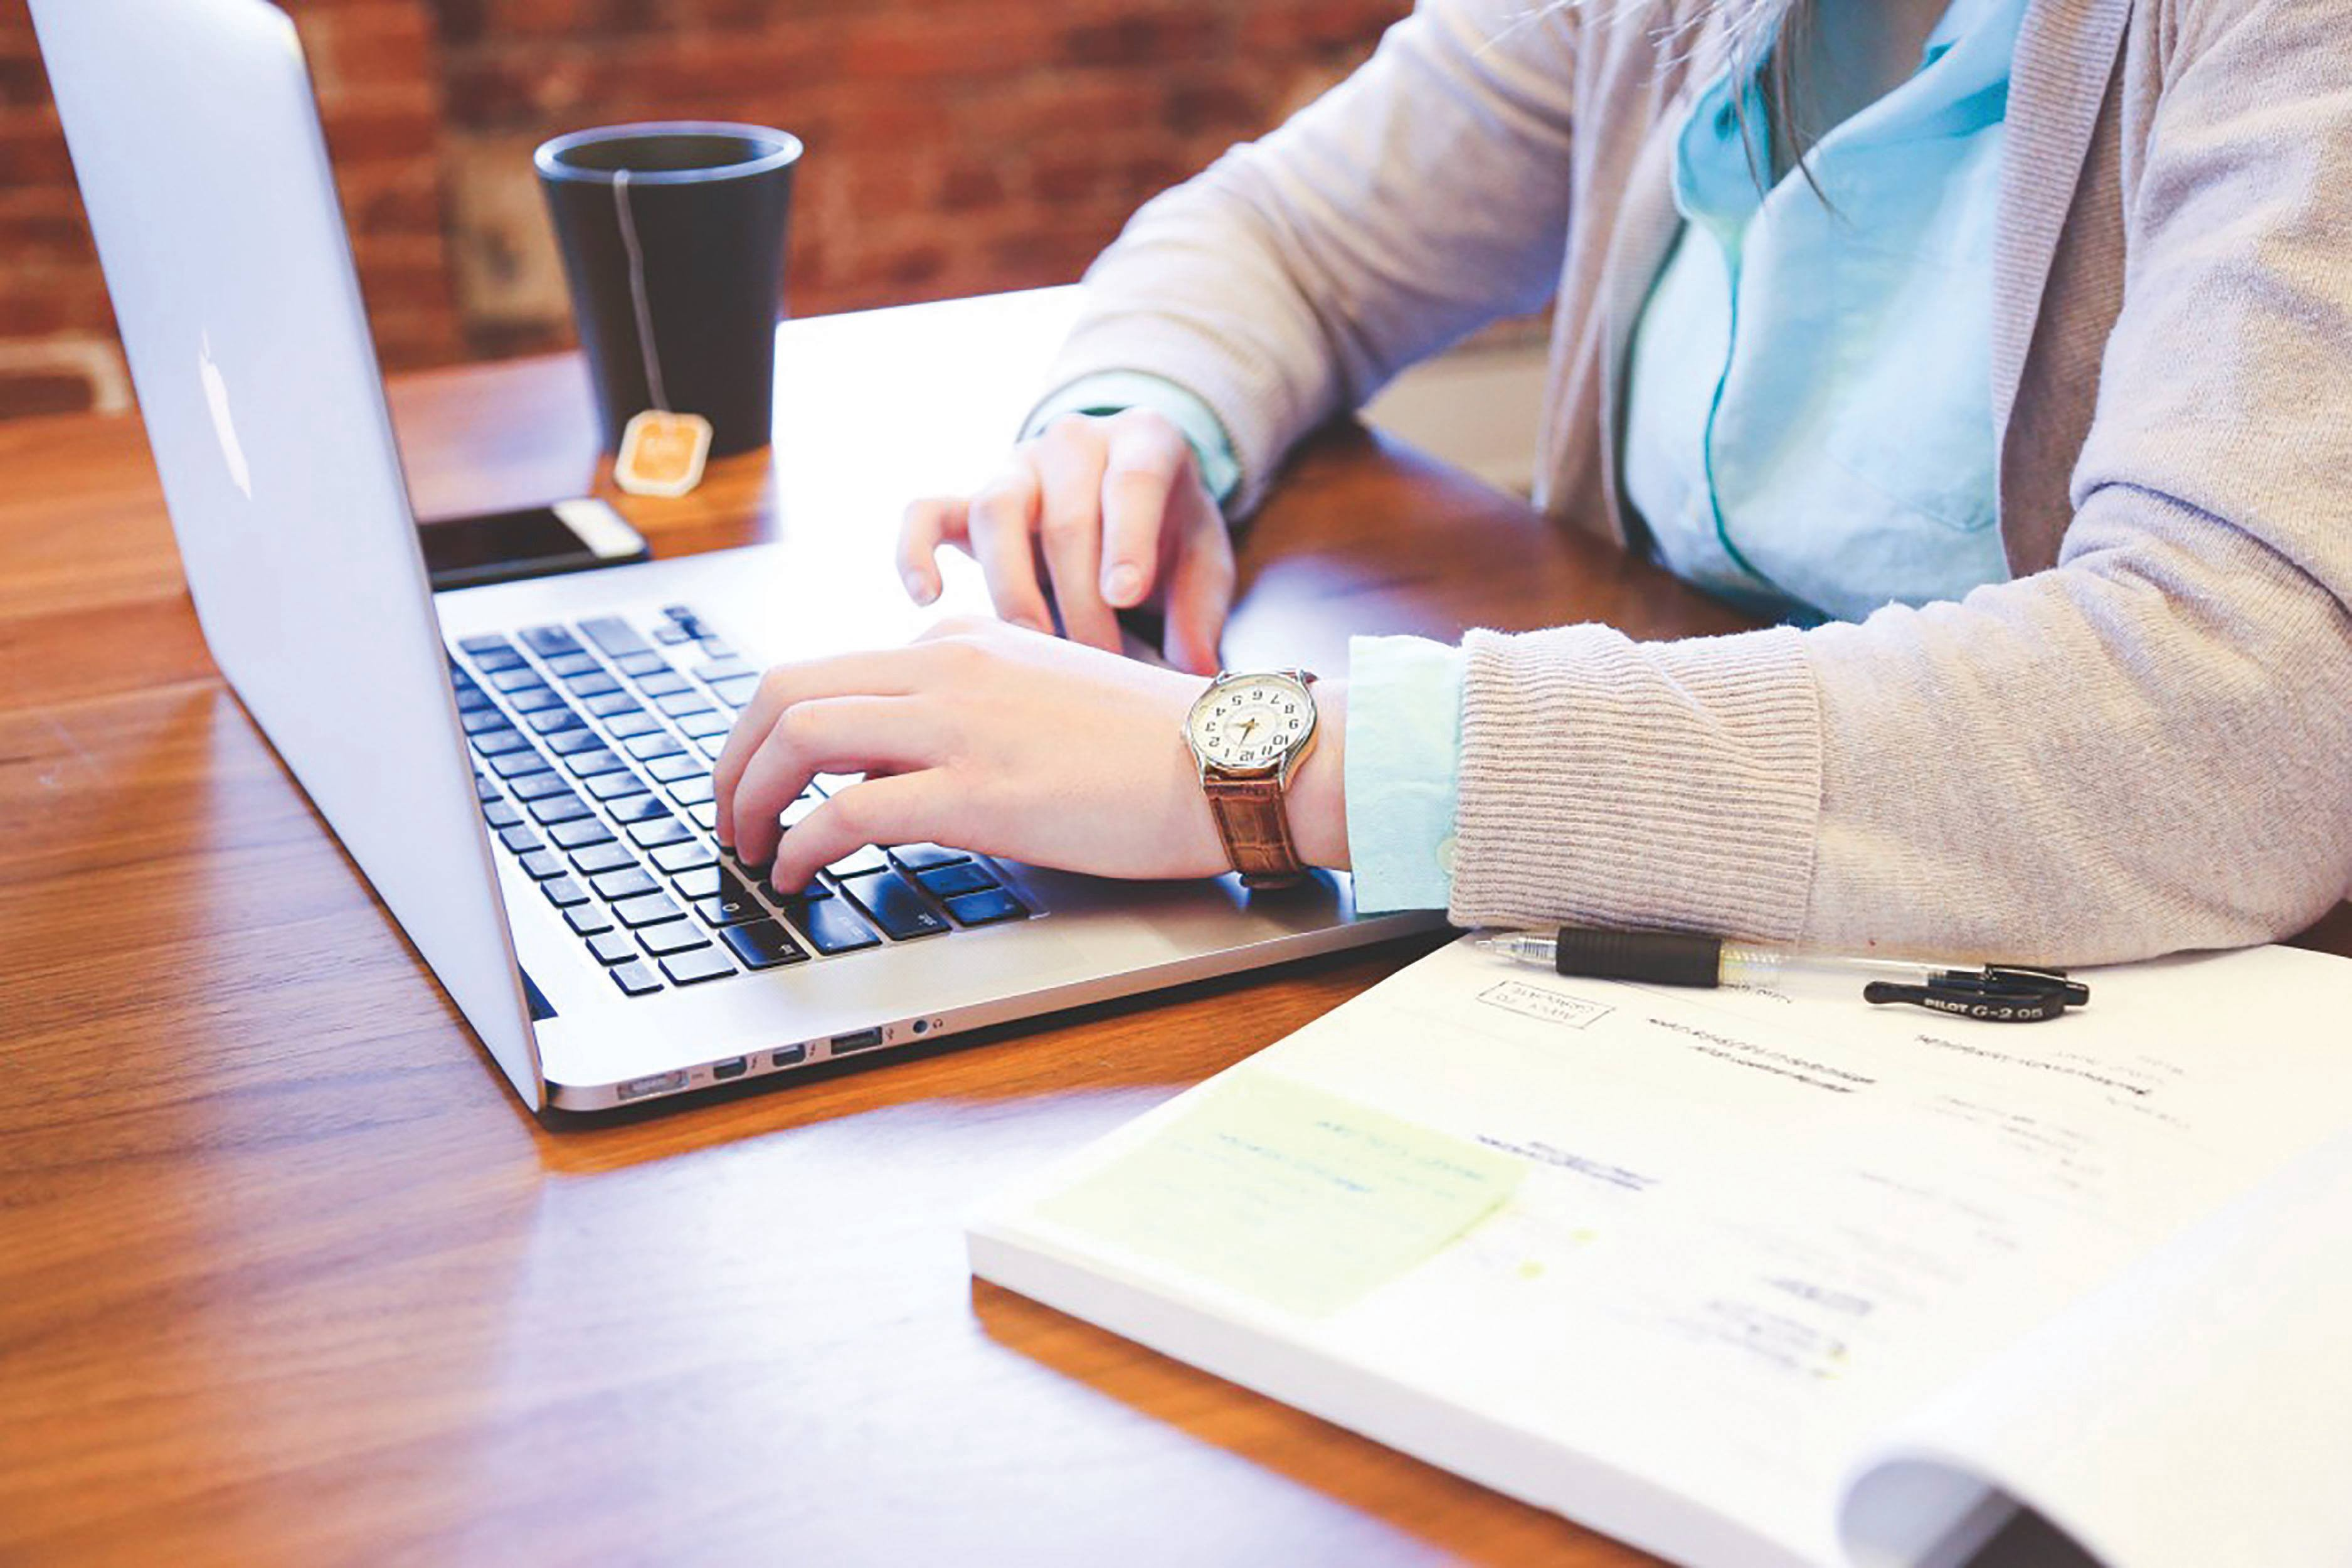 How to Build Your Resume for College Applications